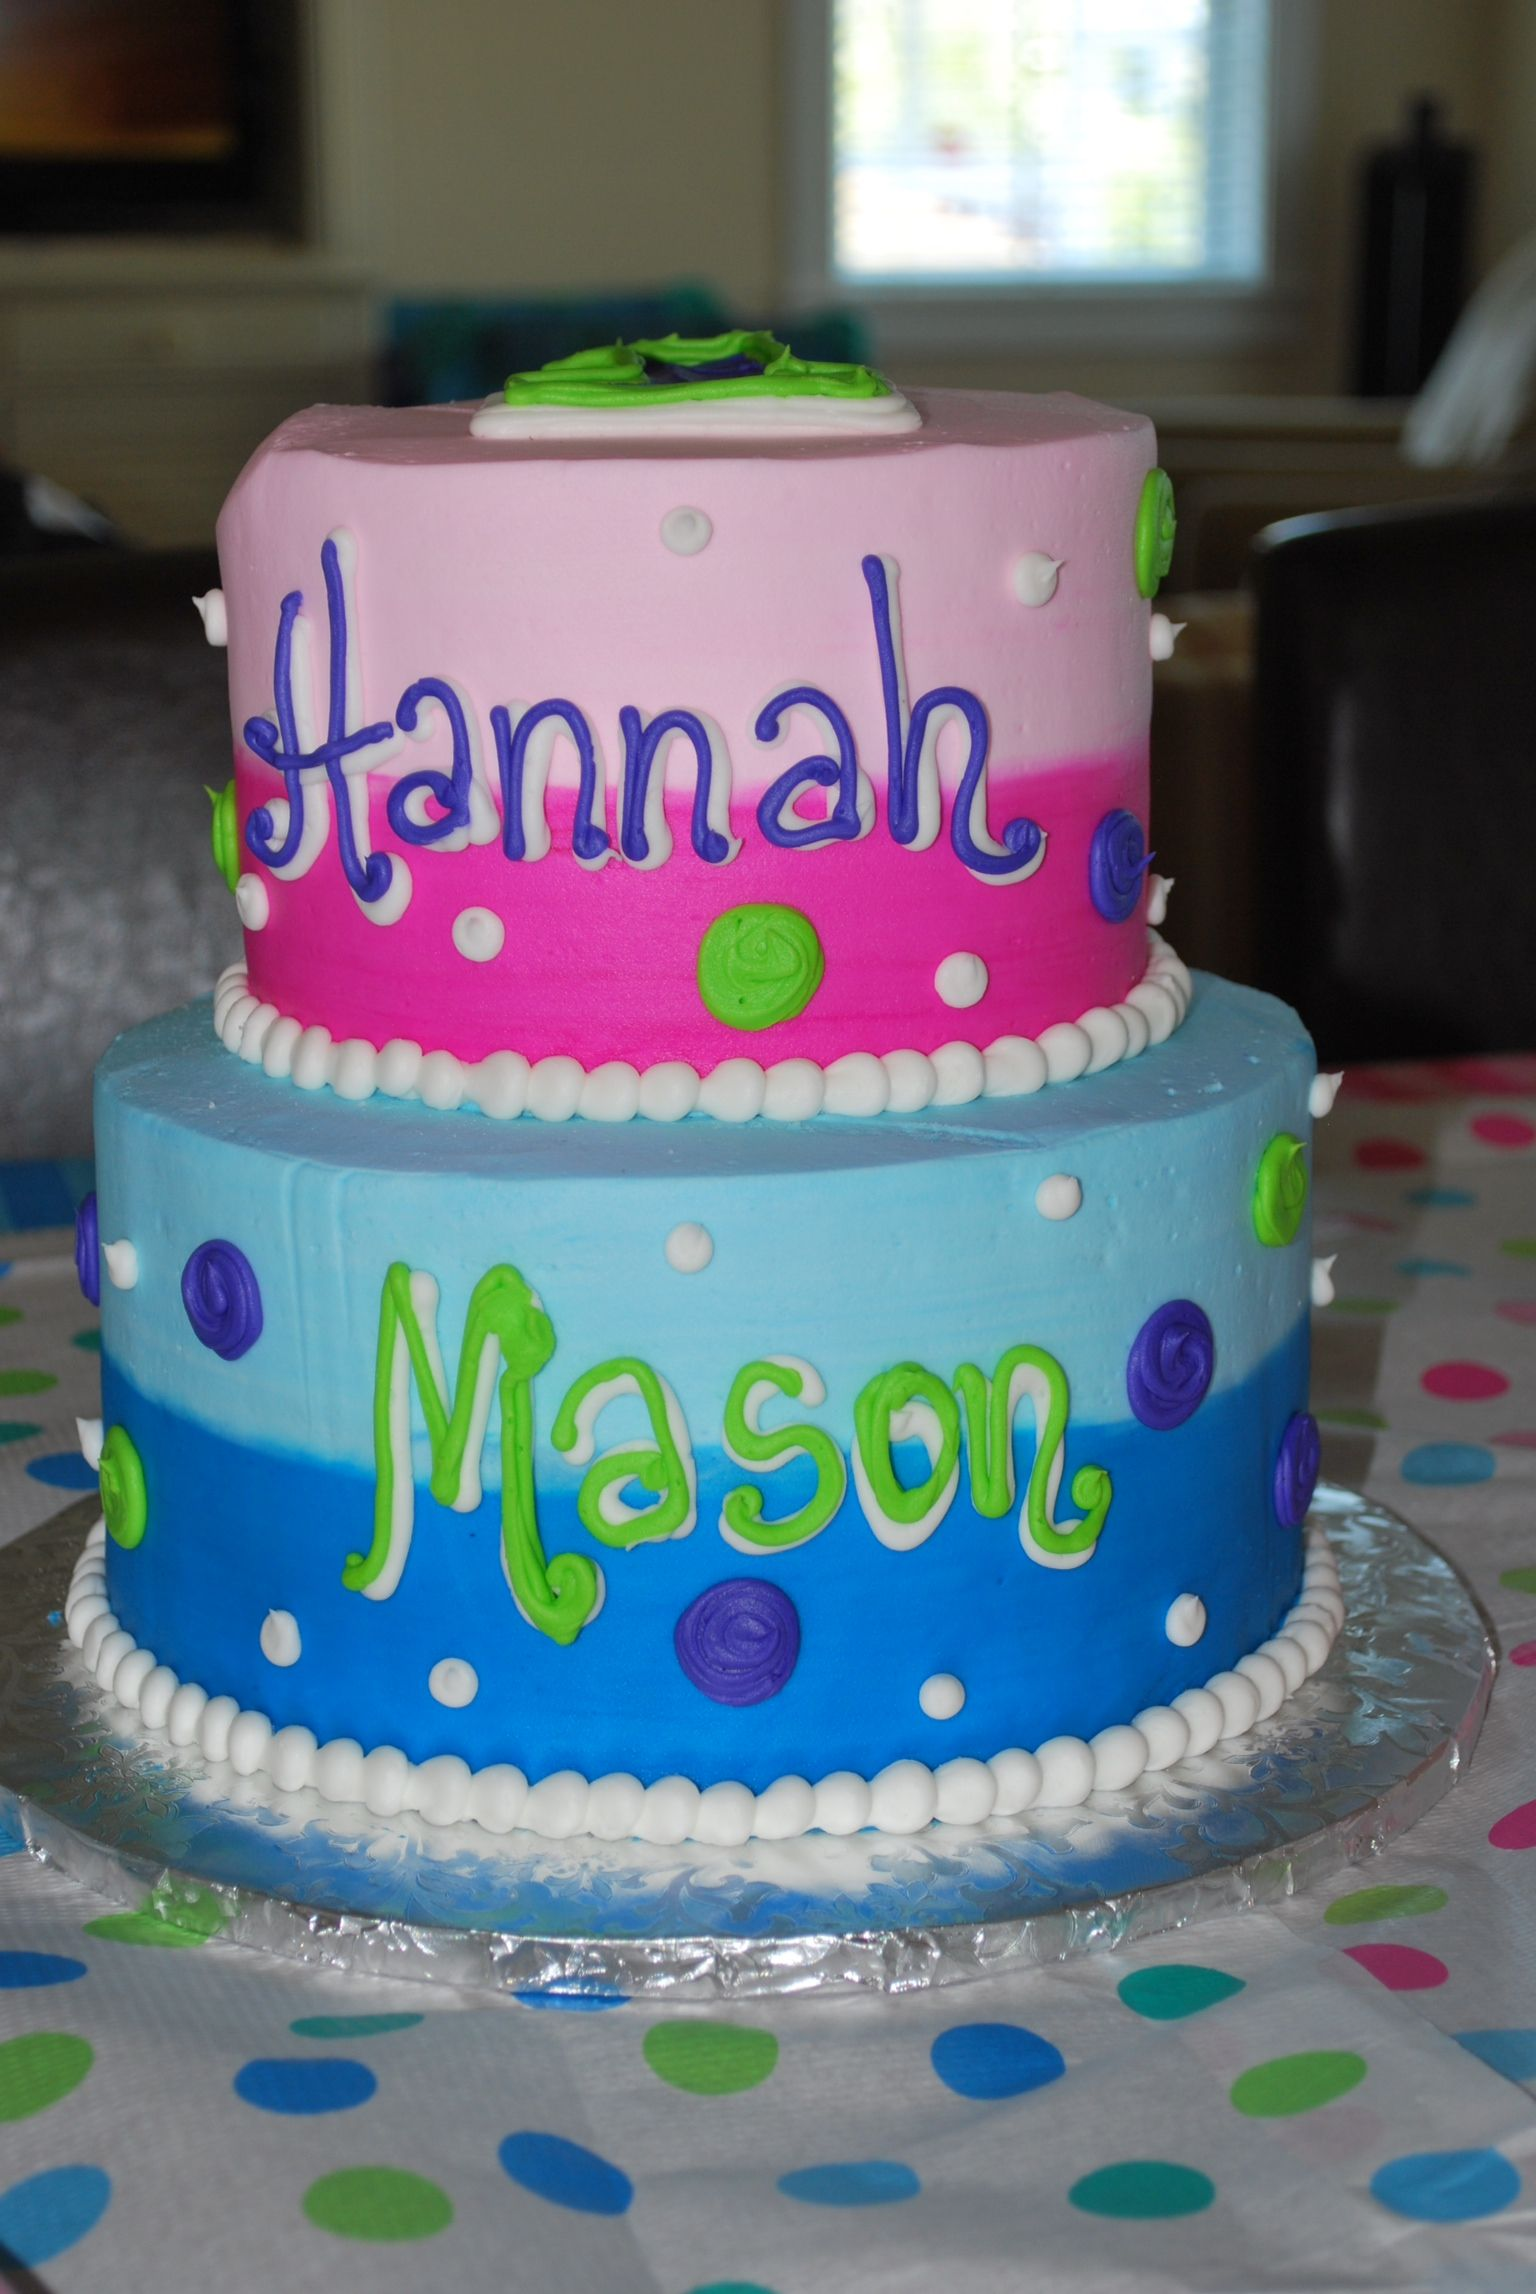 Boy Girl Twins Cake  Good Way To Have Their